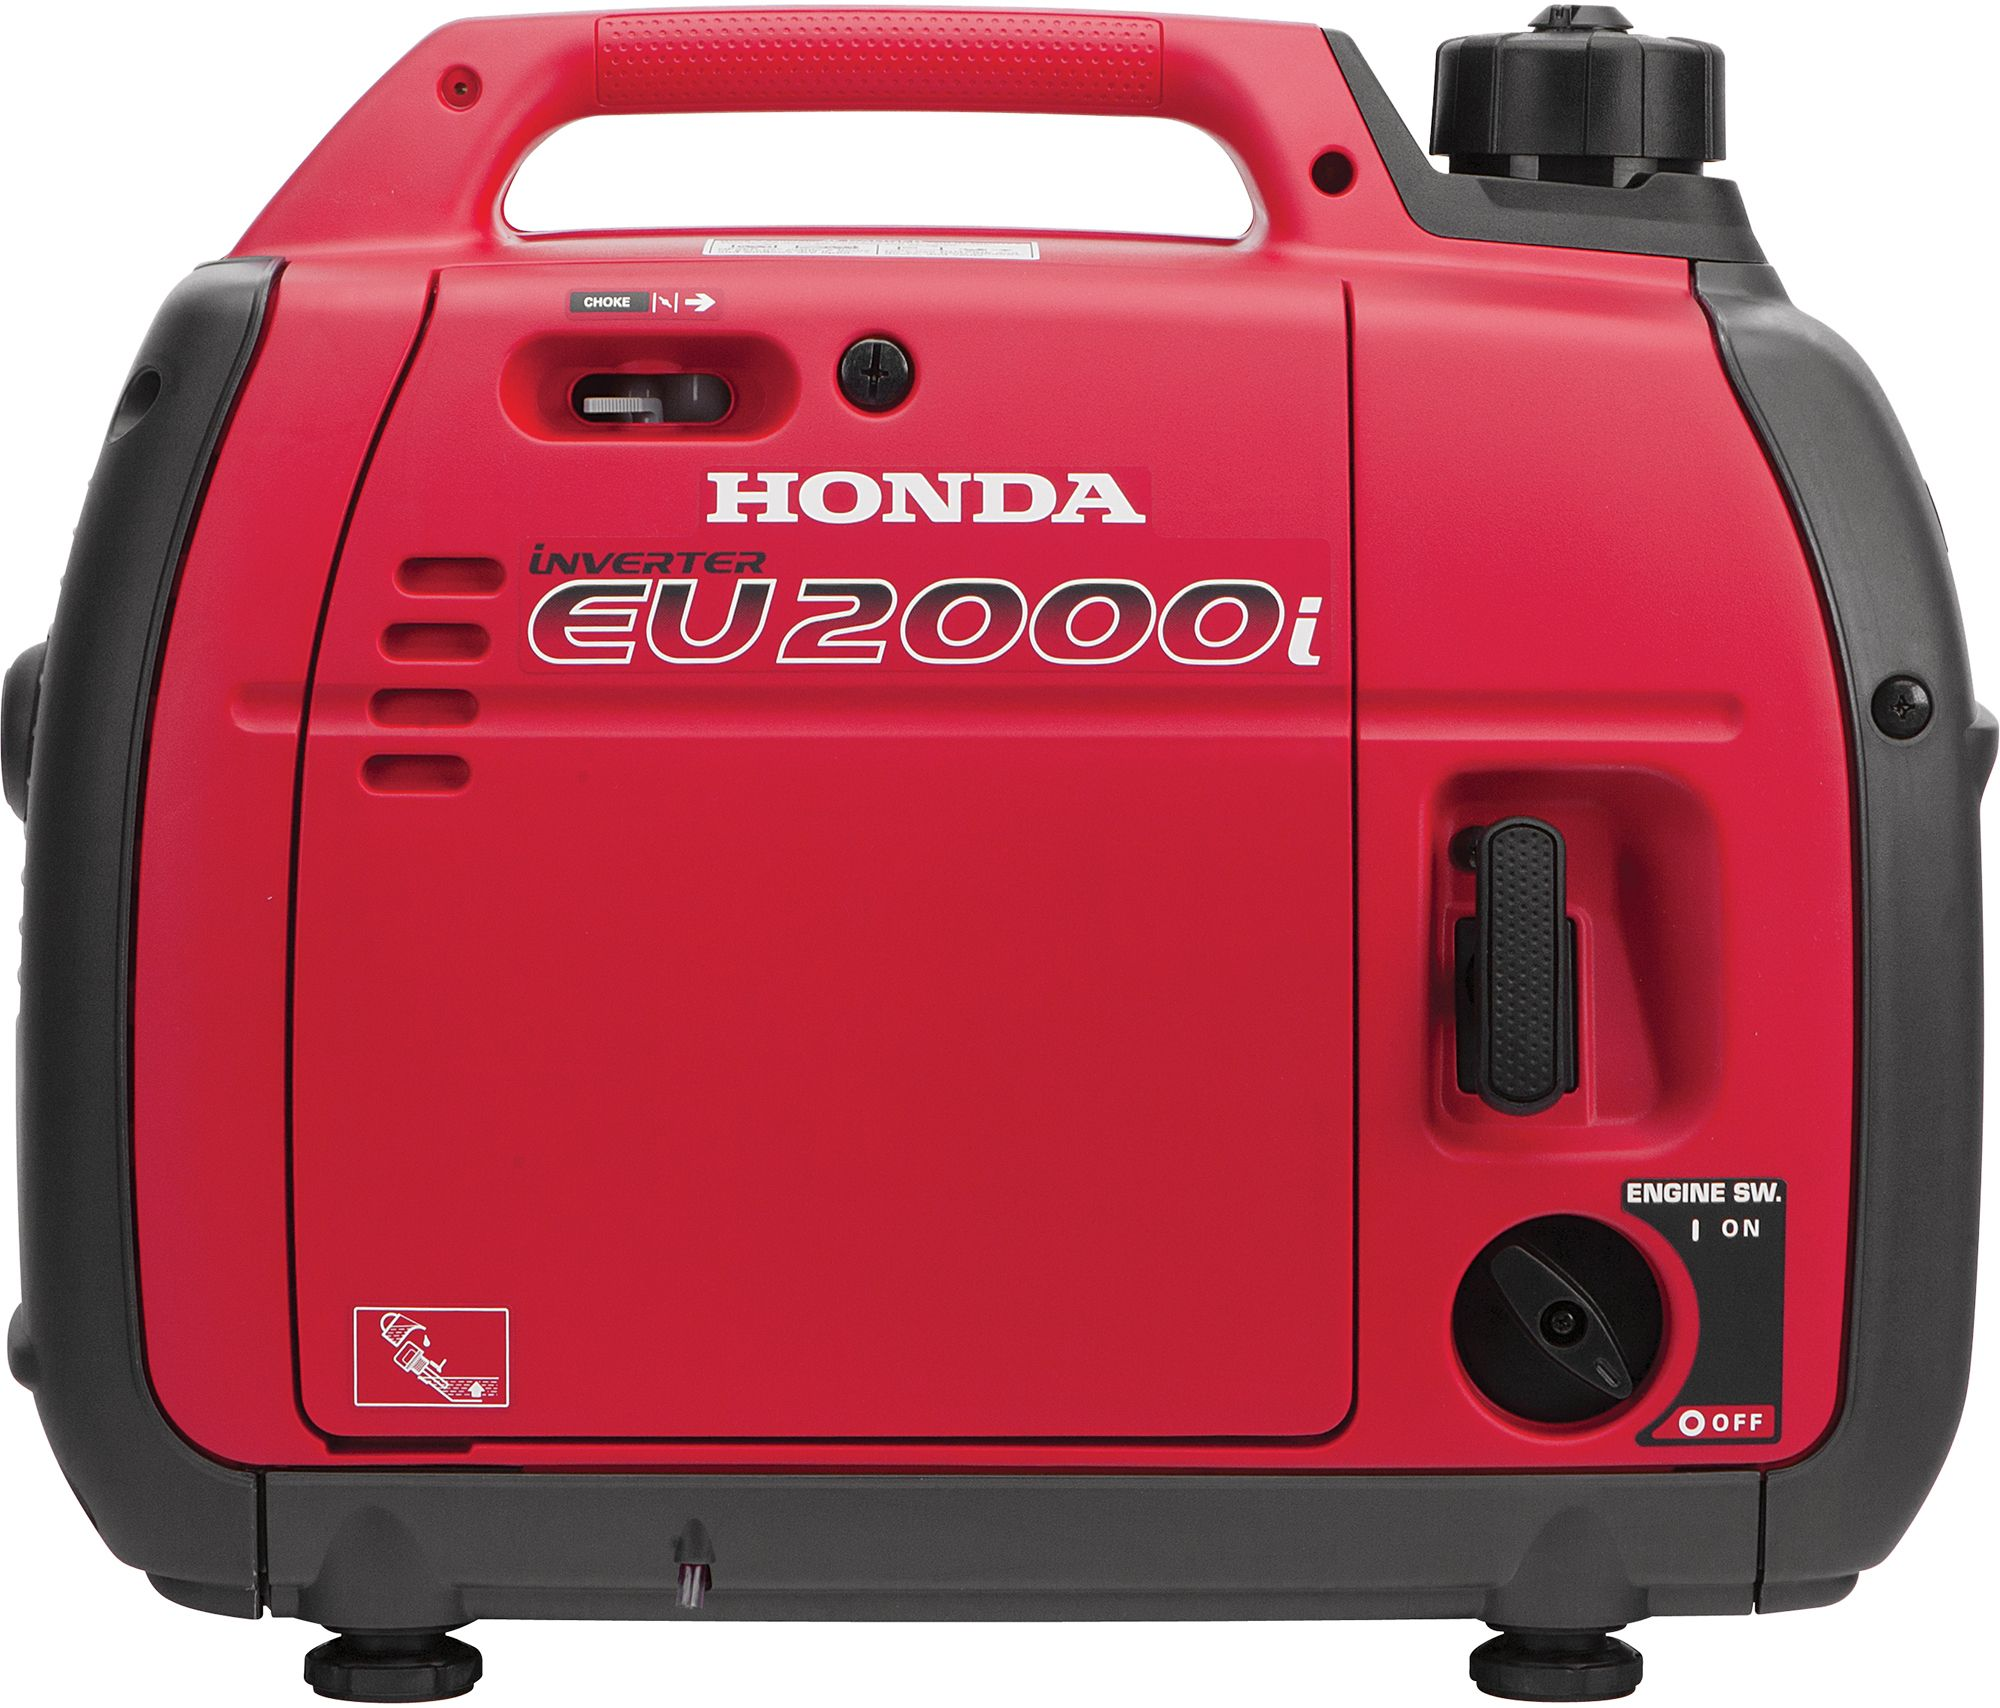 Honda eu2000i price honda eu2000i generator on honda for Honda vs yamaha generator